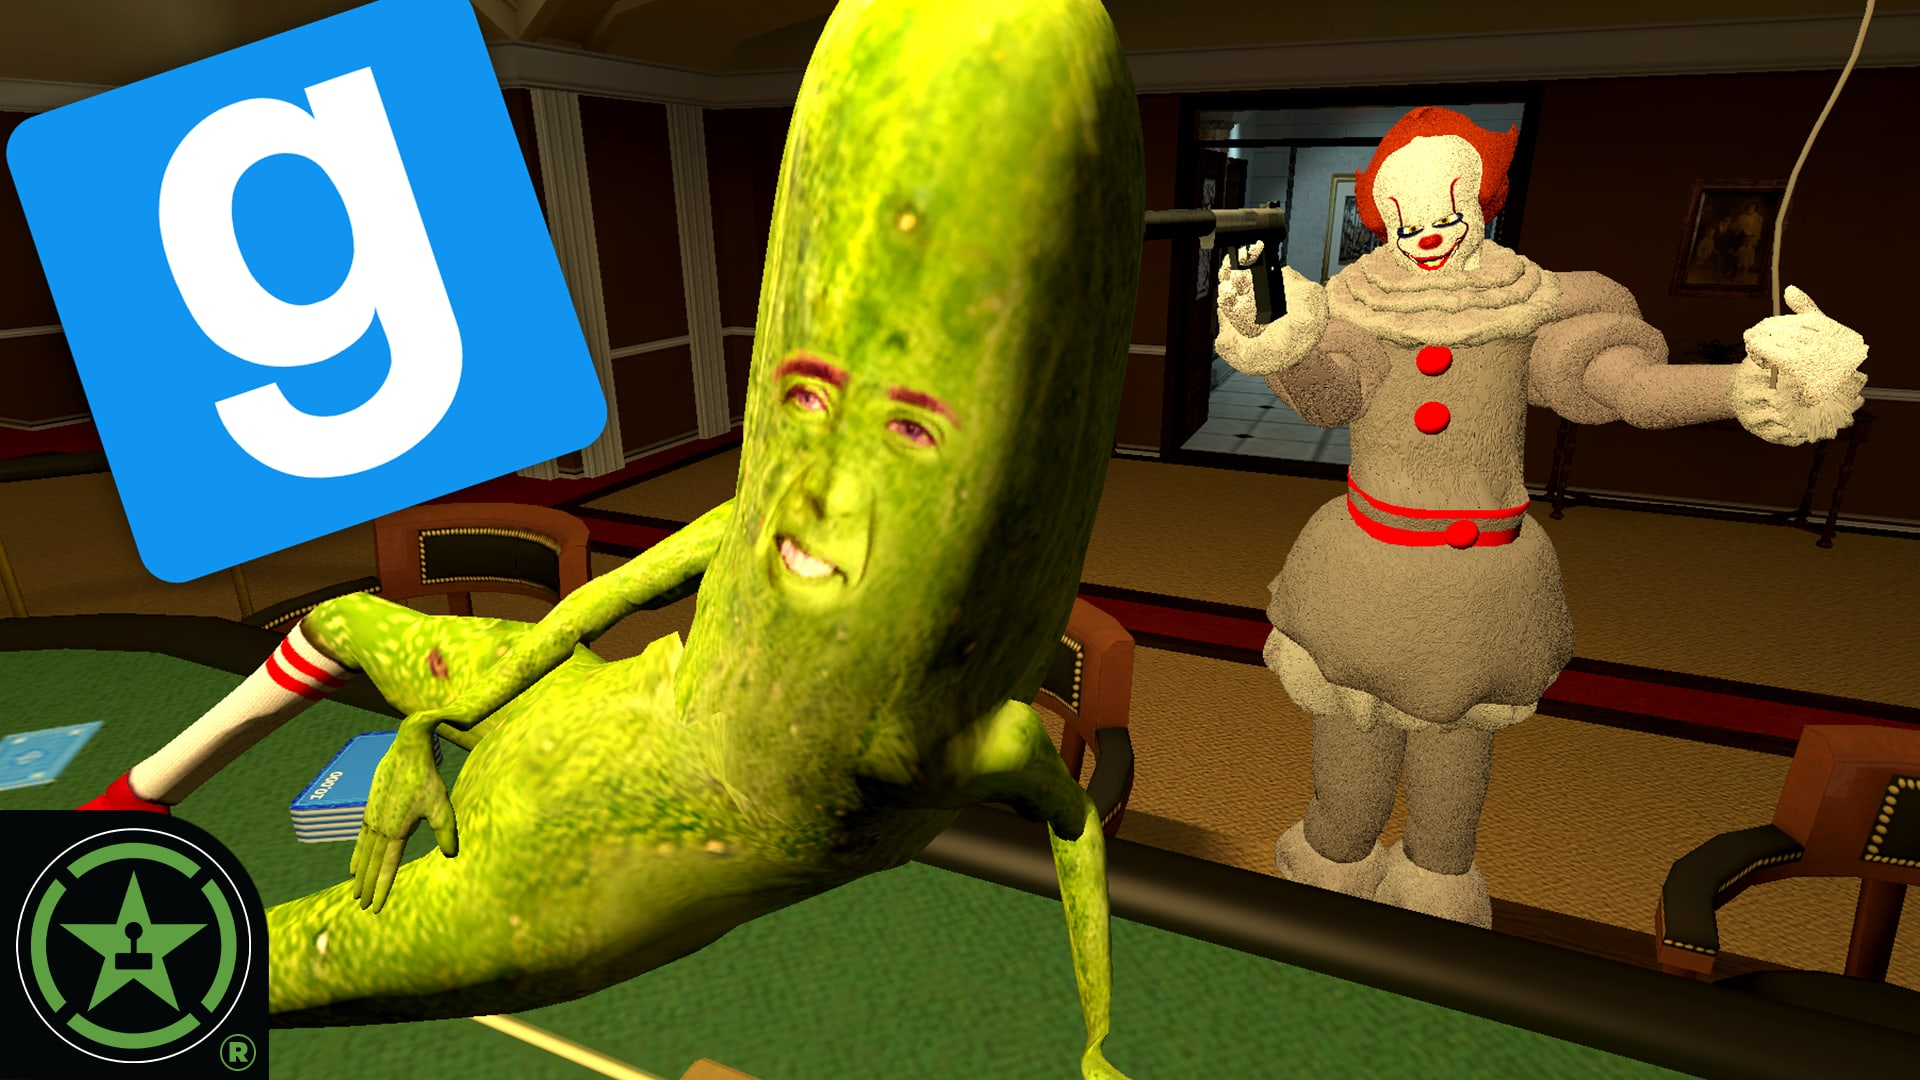 Picolas Cage will Float - Gmod TTT: All Gus August - Rooster